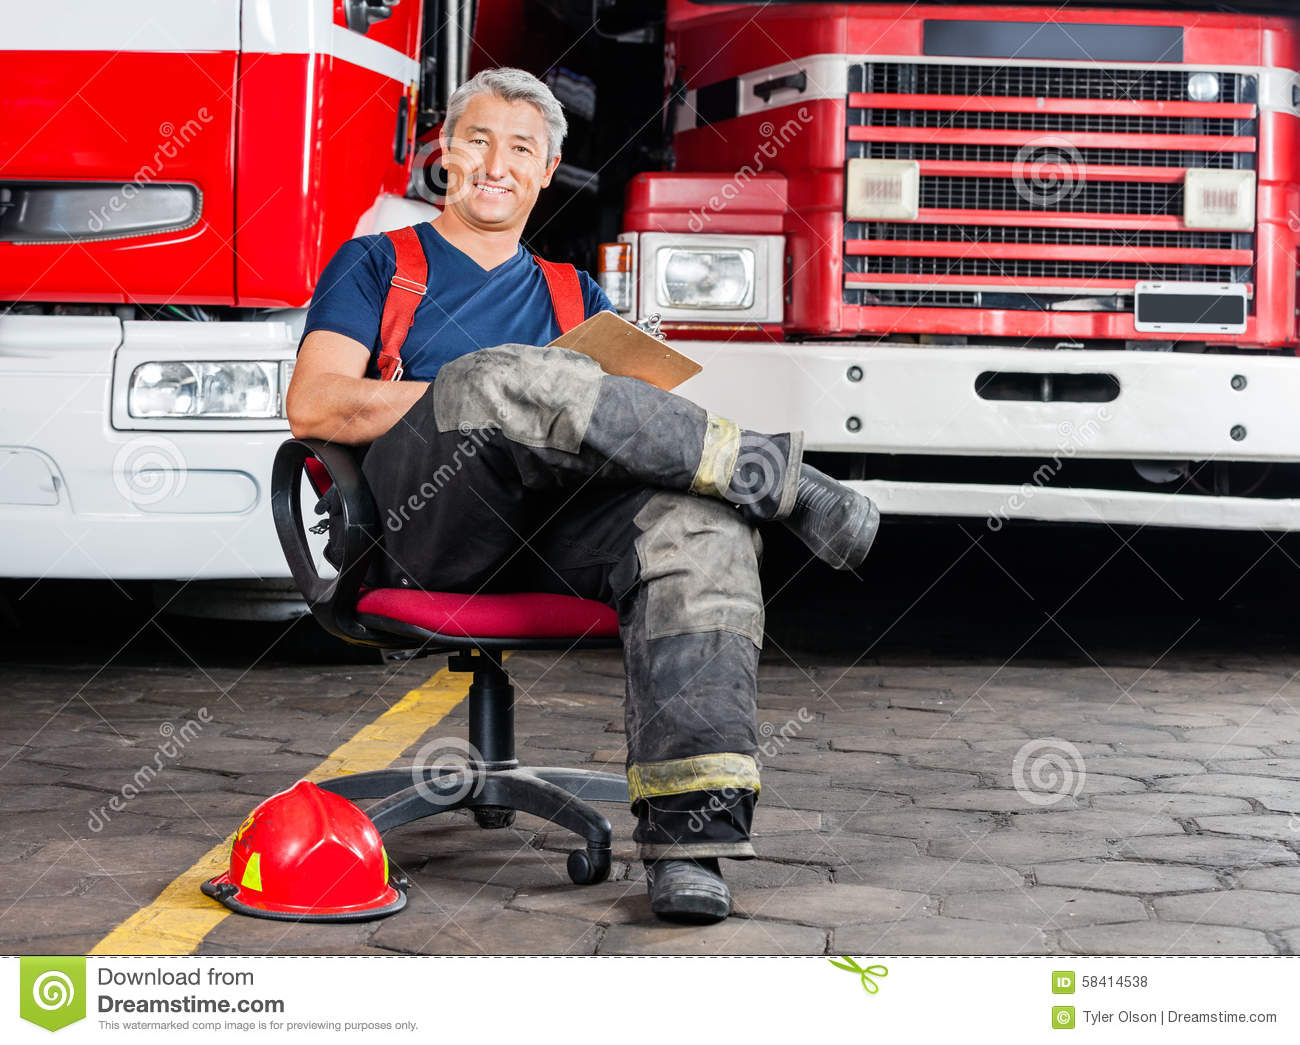 wheelchair on fire high gloss white dining table and chairs happy firefighter sitting chair against trucks stock